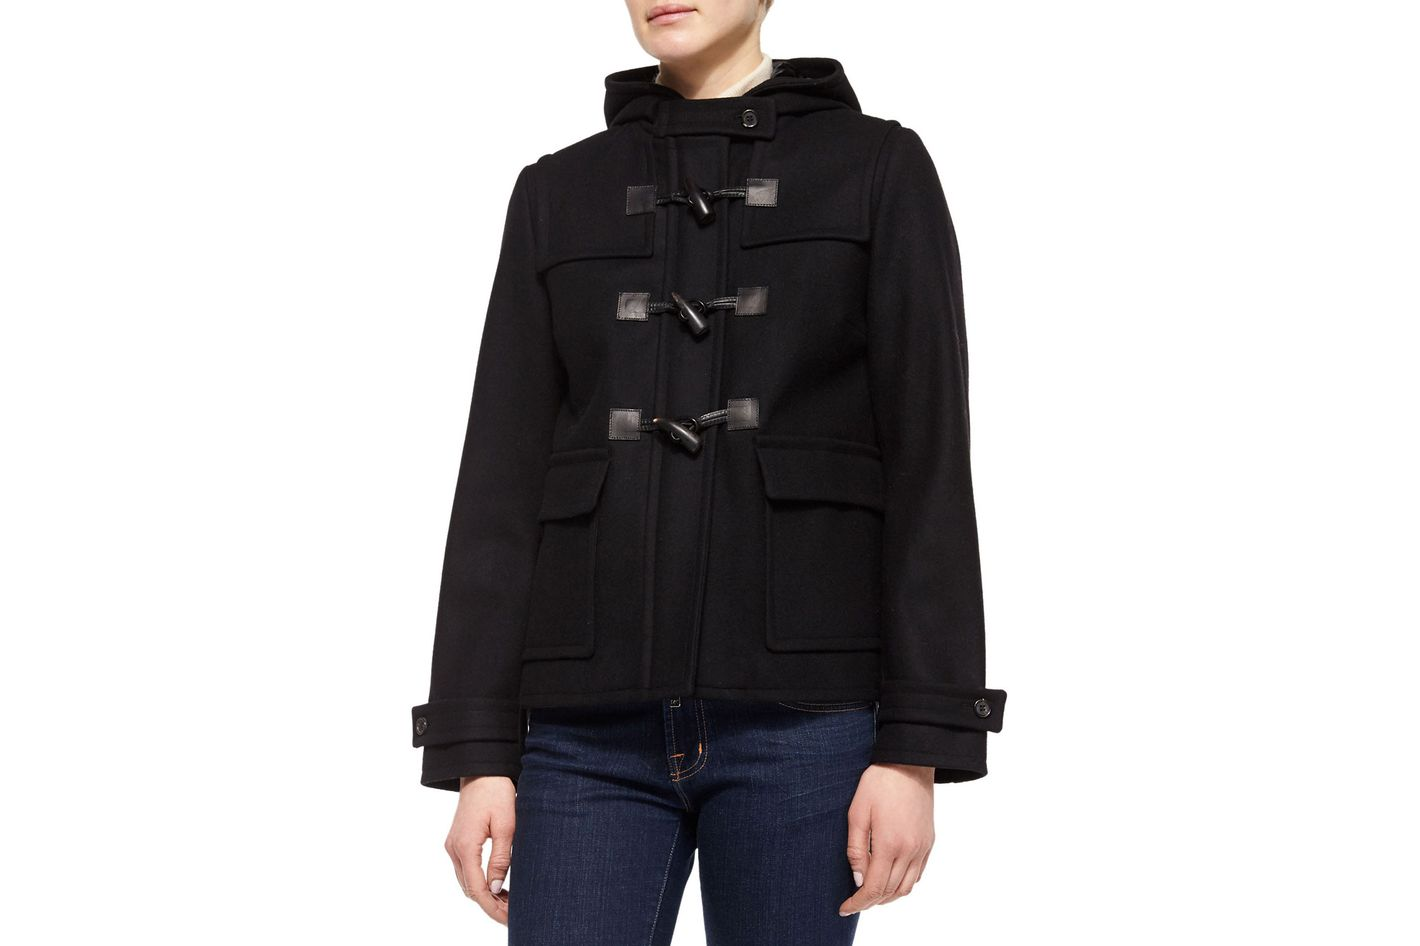 Michael Kors Toggle Coat